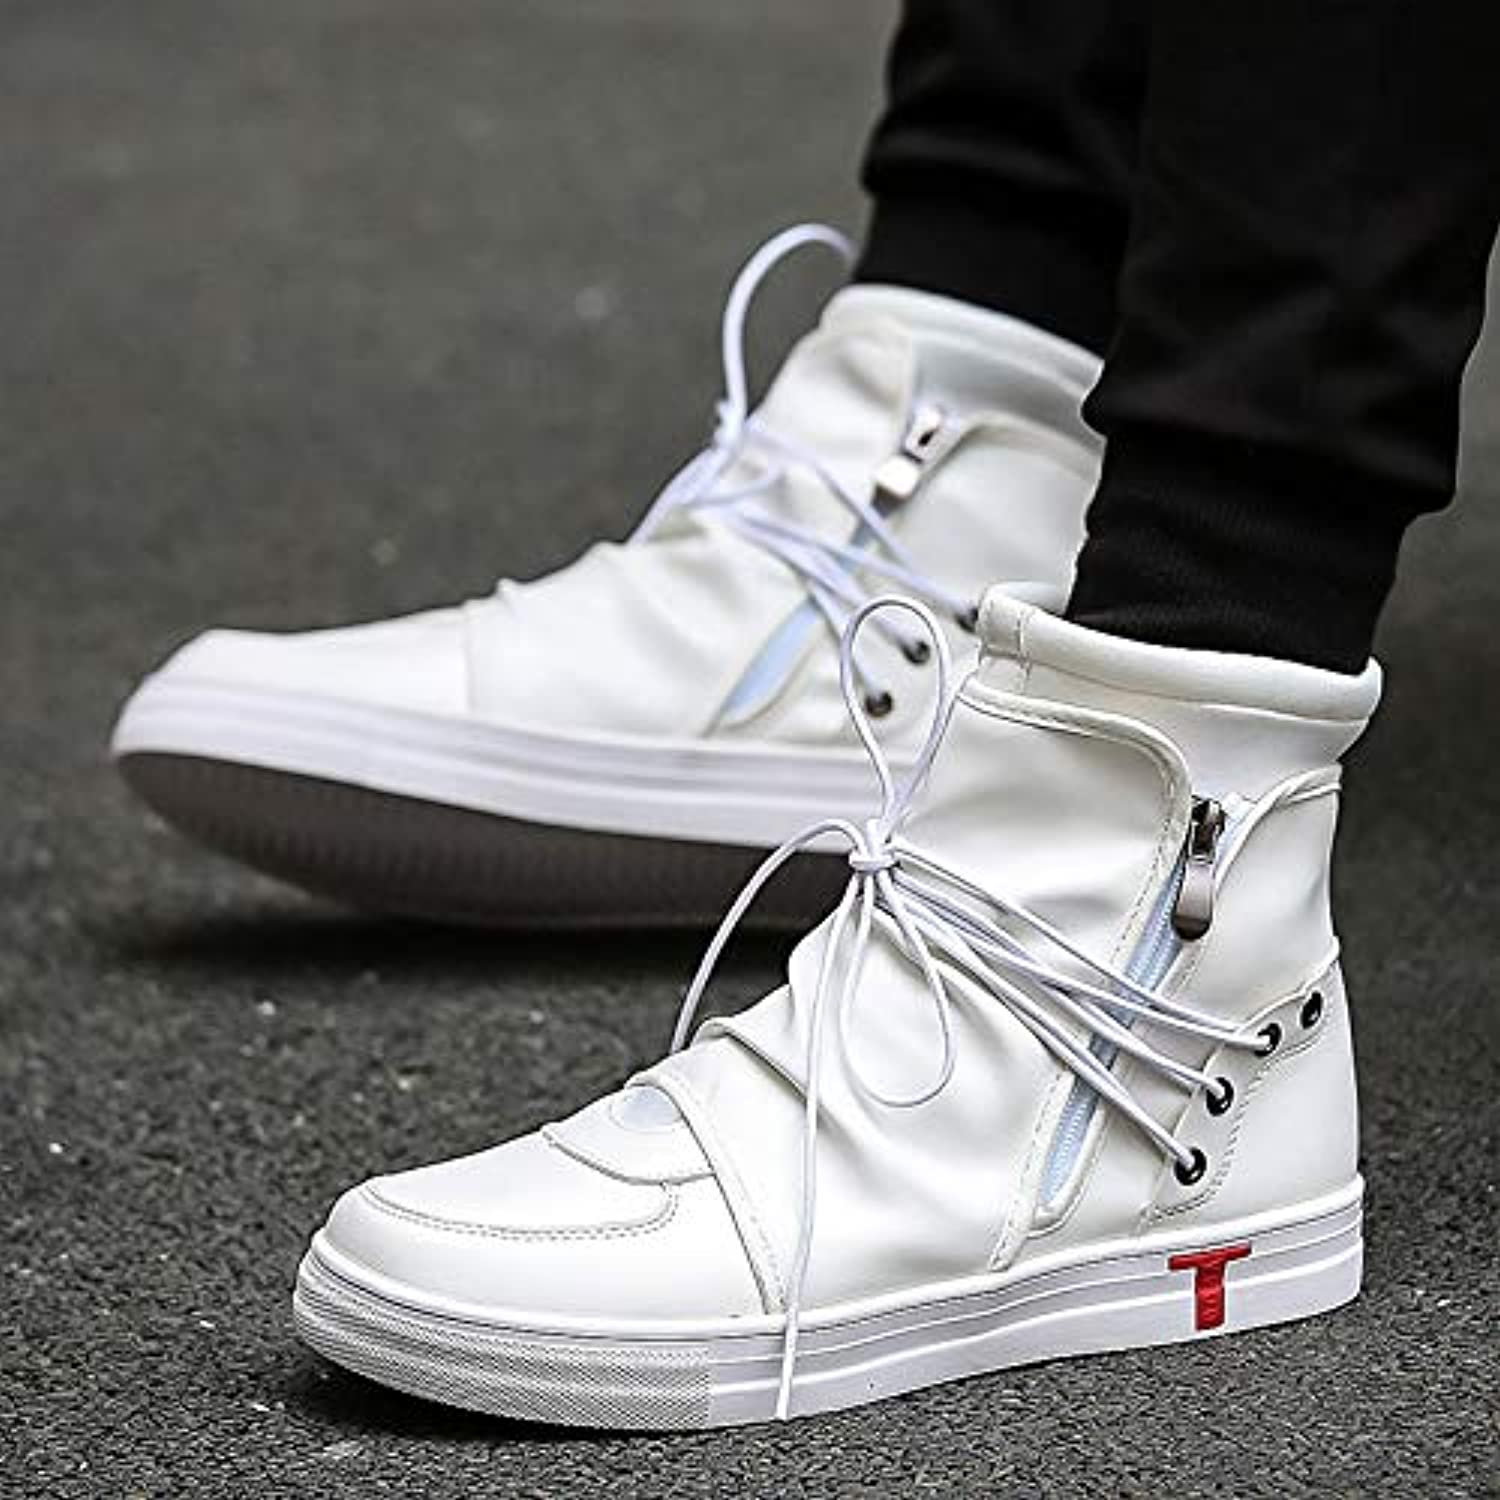 LOVDRAM Men's shoes Spring Top shoes Casual shoes Men'S Fashion Men'S White Short Boots Fashion Men'S shoes